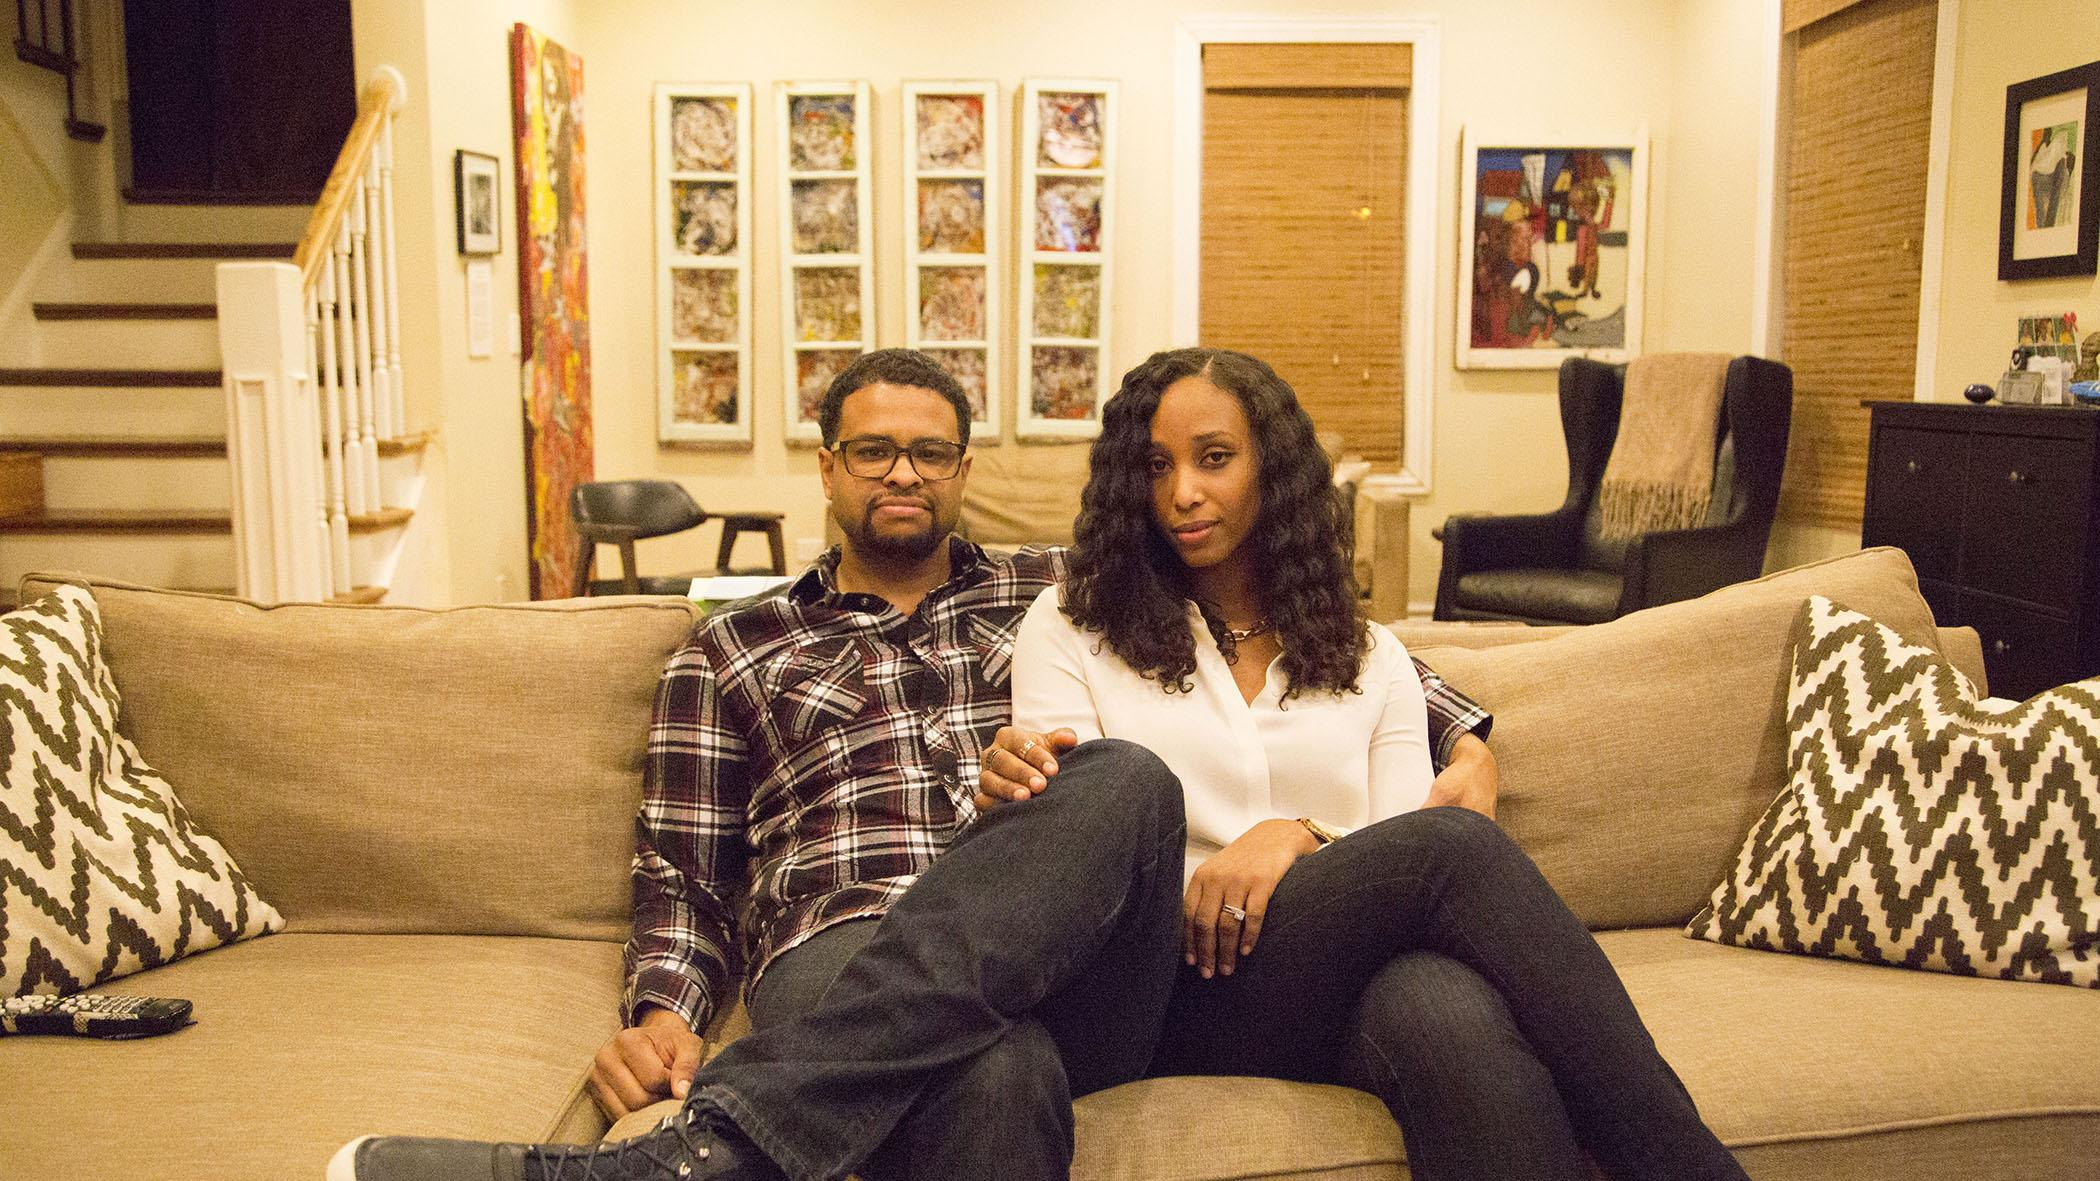 A man and woman sit close to each other on a couch in a homey room decorated with colorful art.